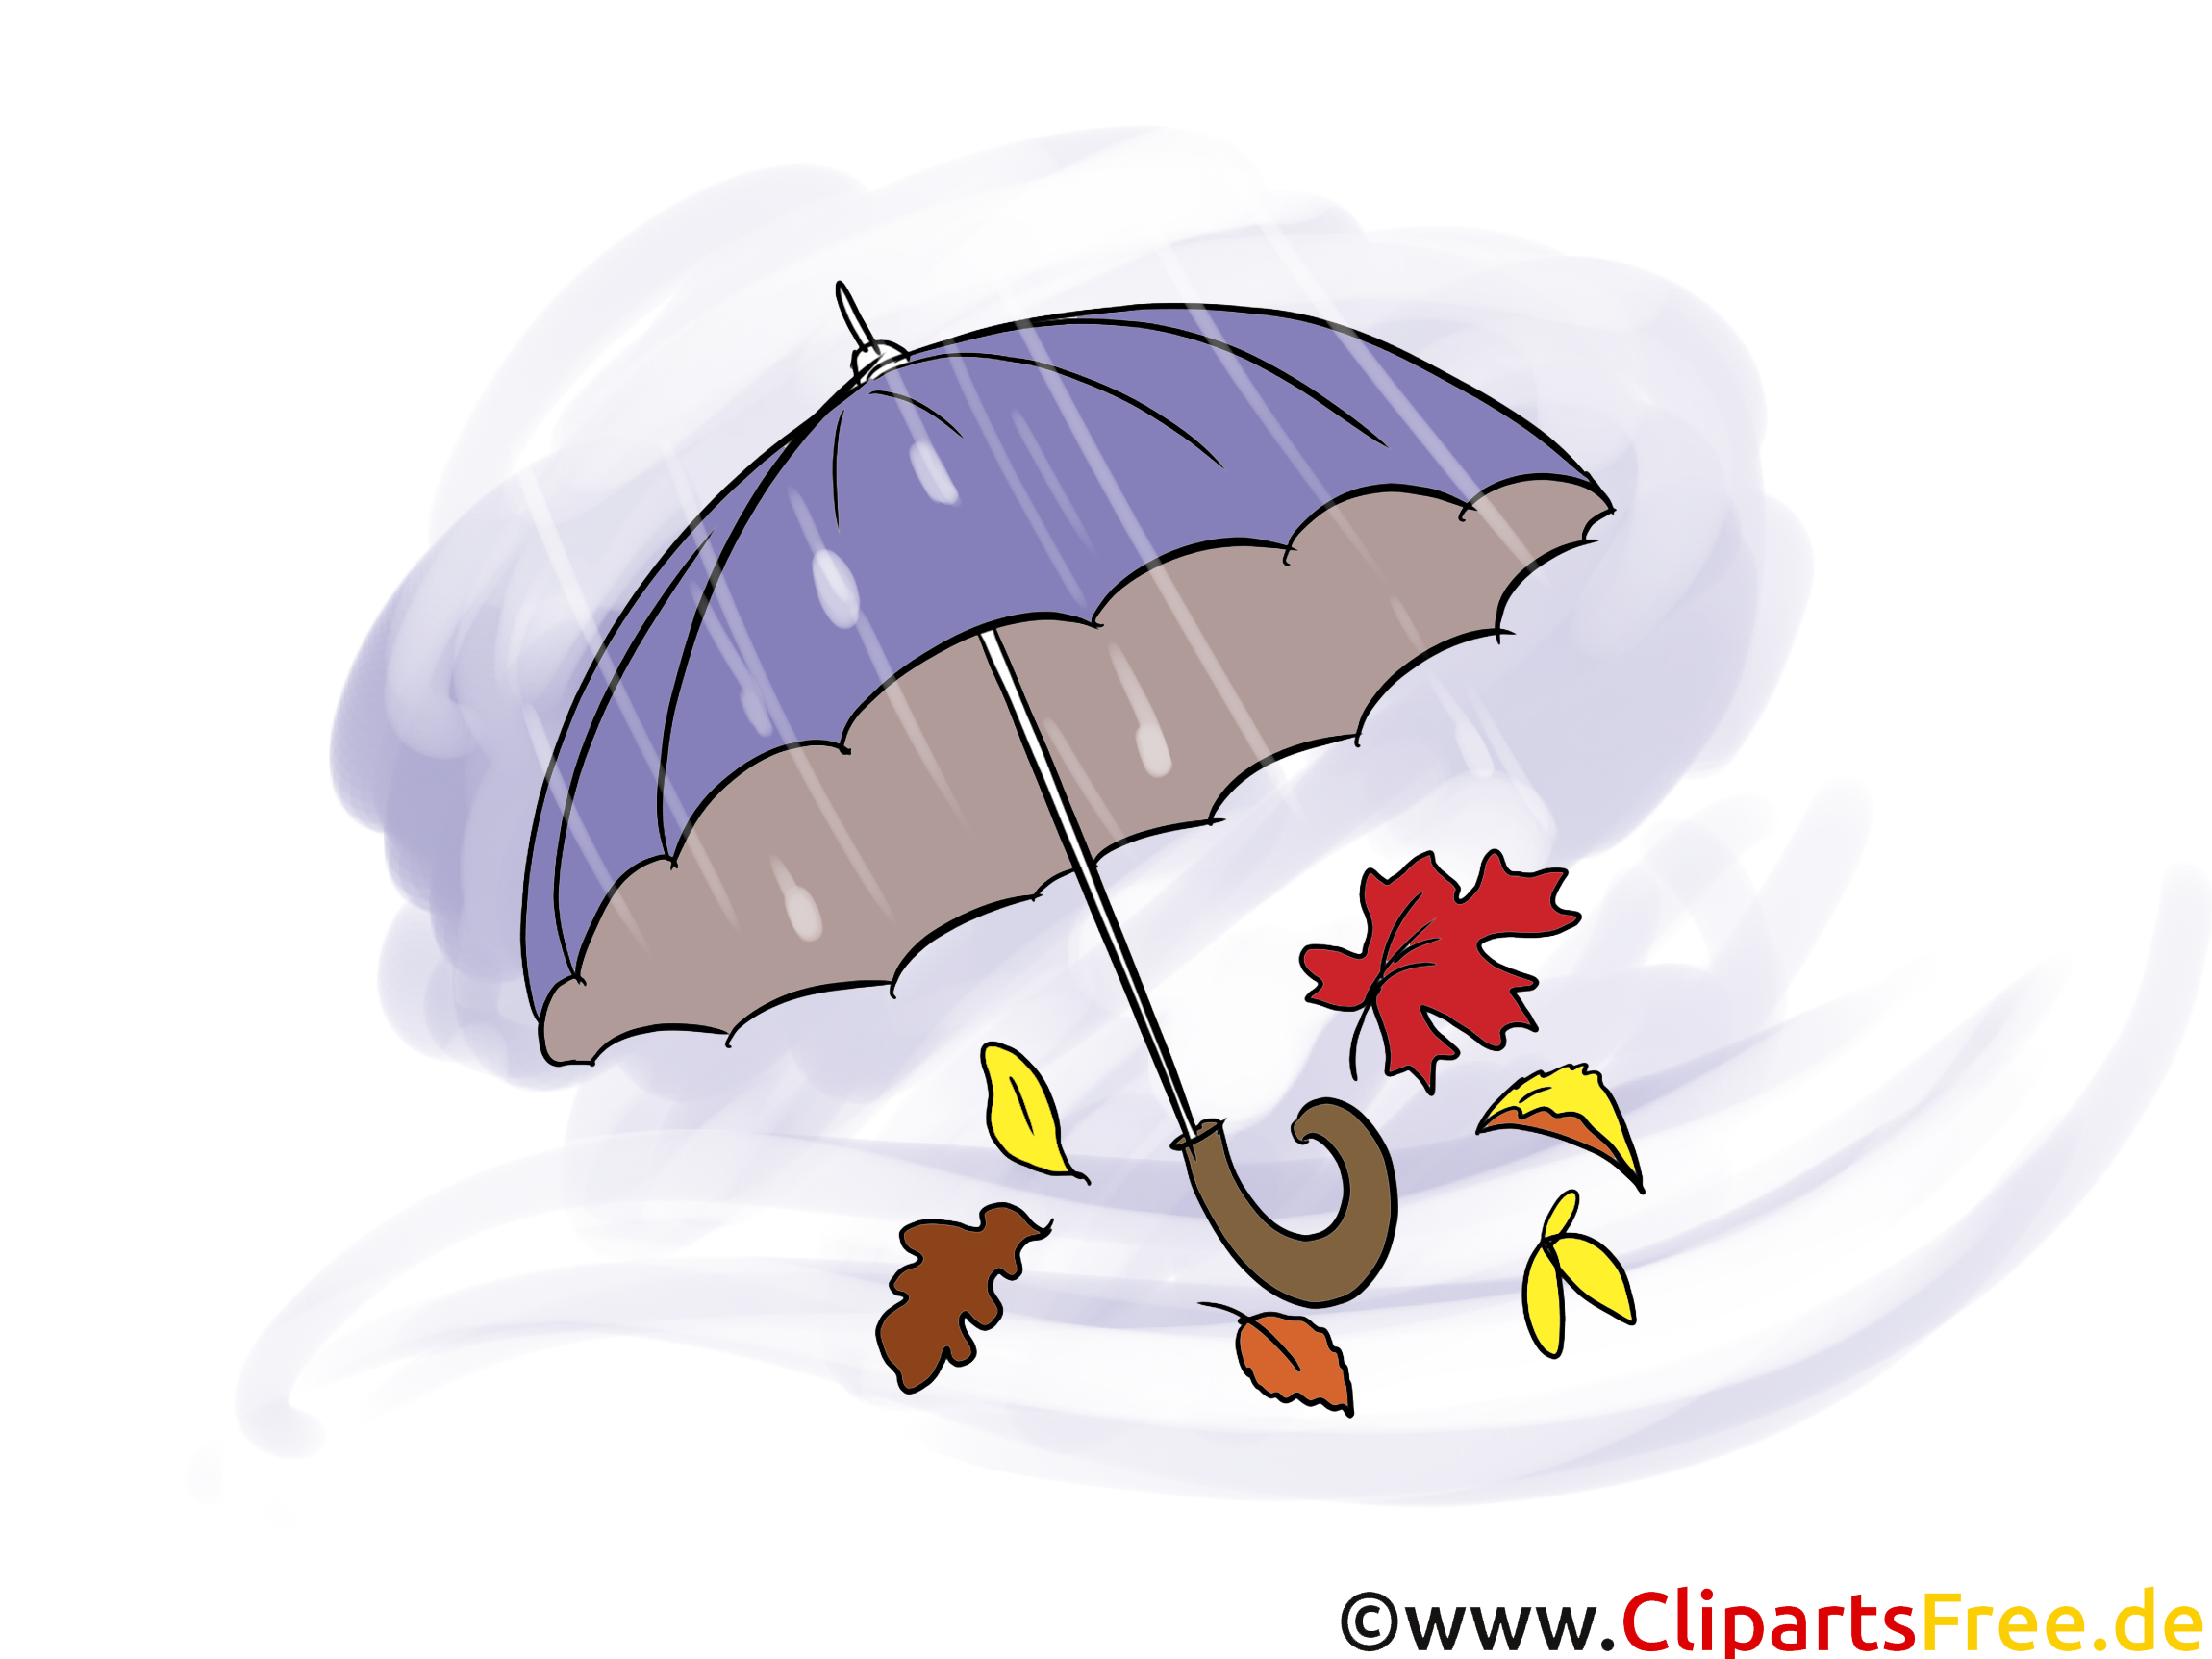 parapluie images gratuites automne clipart automne dessin picture image graphic clip art. Black Bedroom Furniture Sets. Home Design Ideas